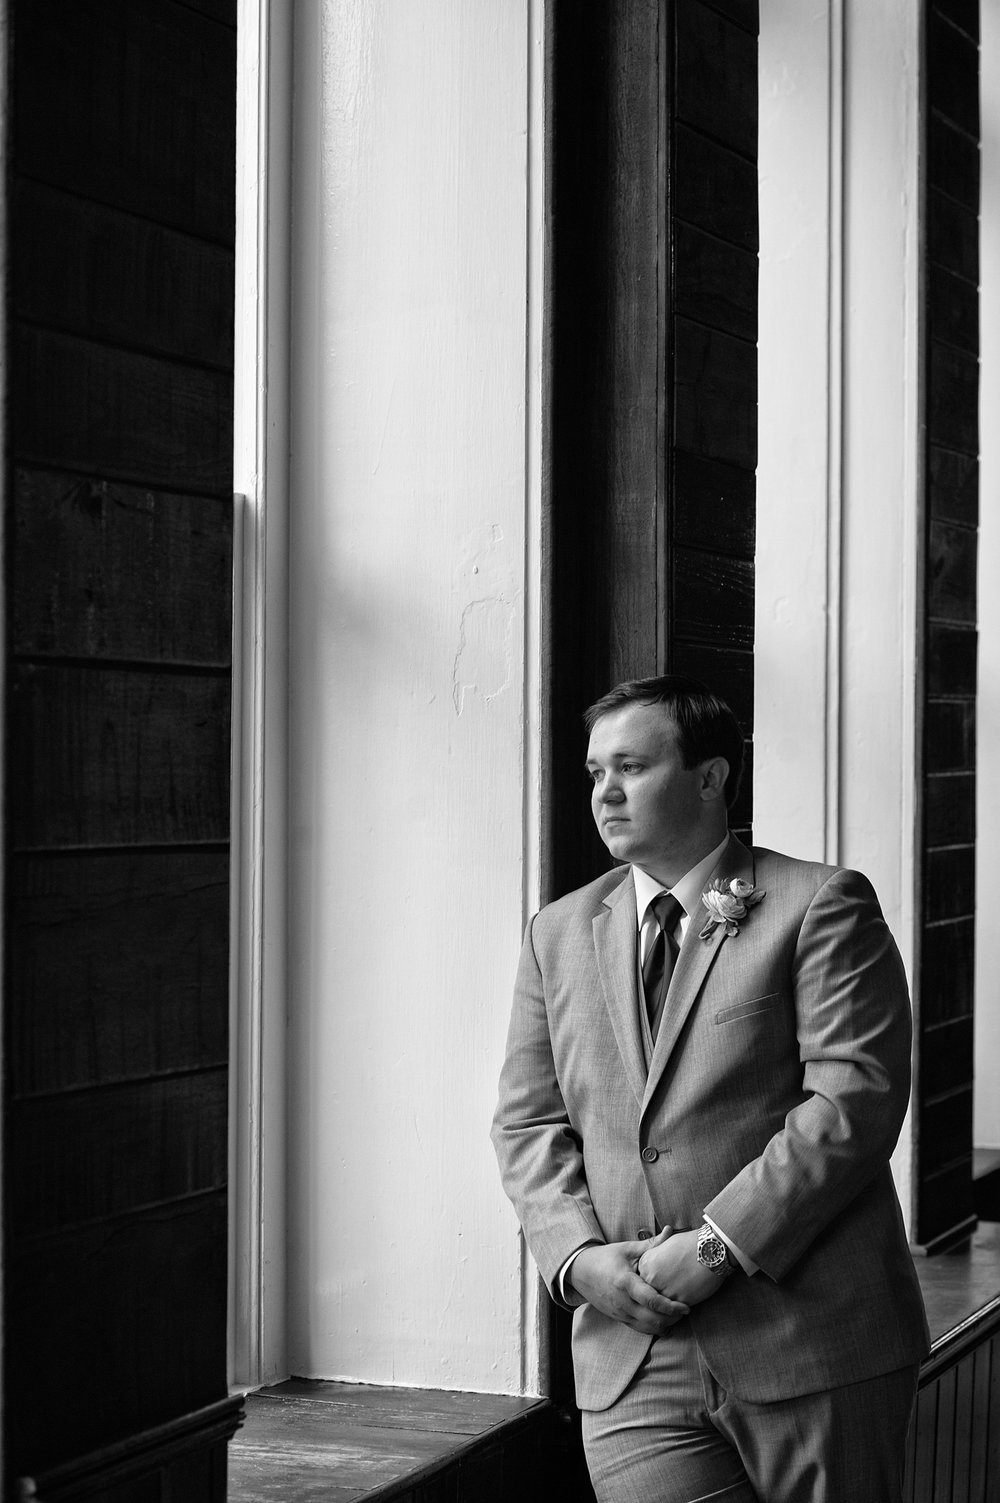 Groom looking out window, black and white image